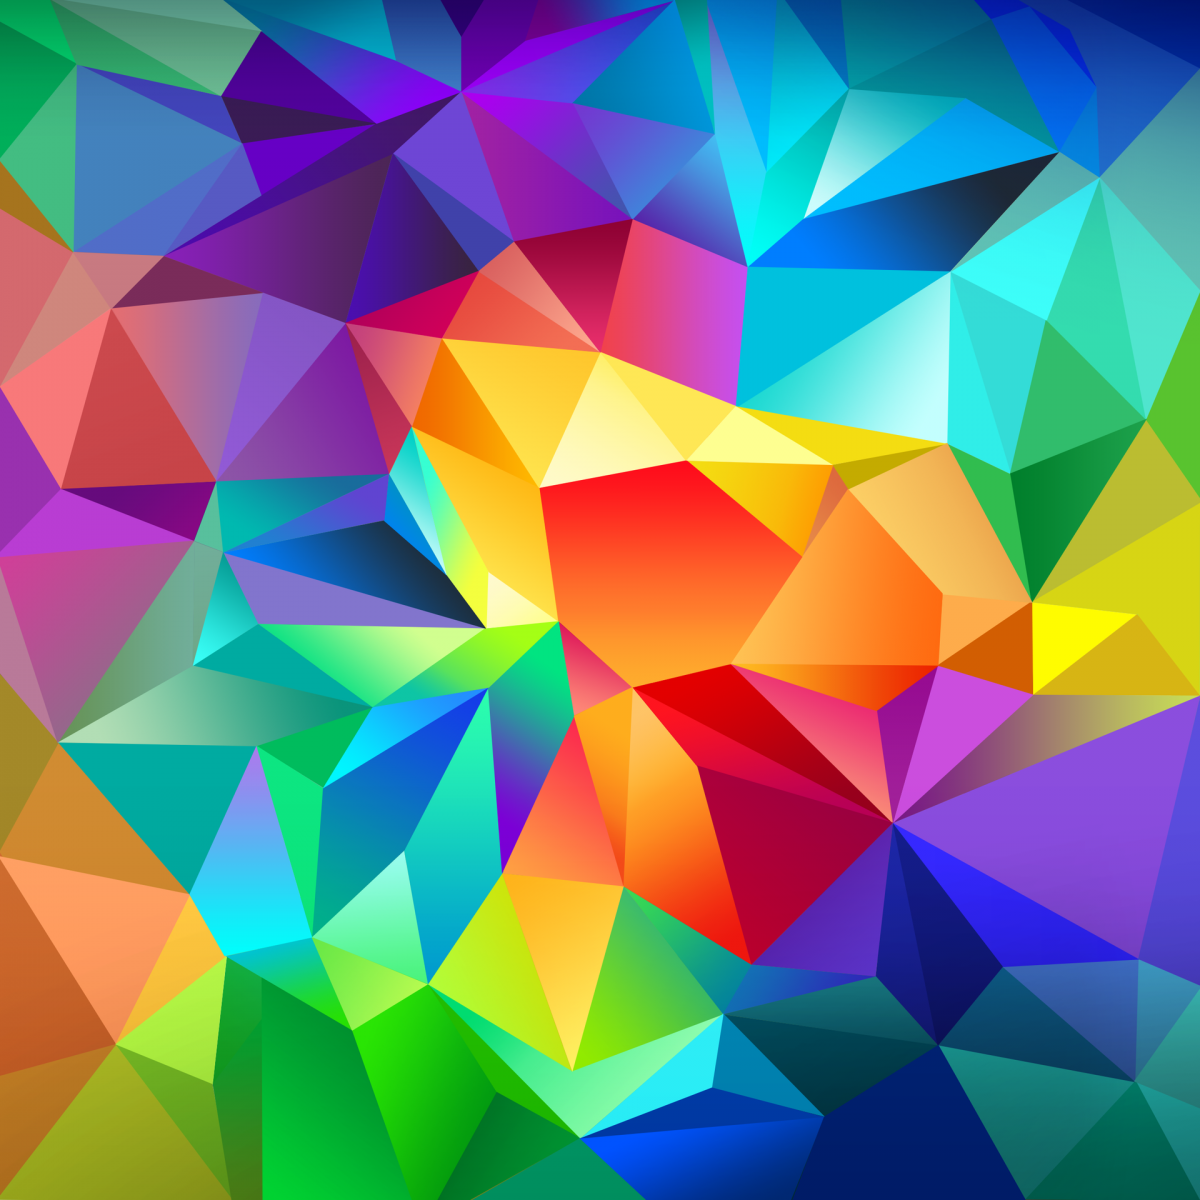 Download] Get all the Samsung Galaxy S5 wallpapers here Now